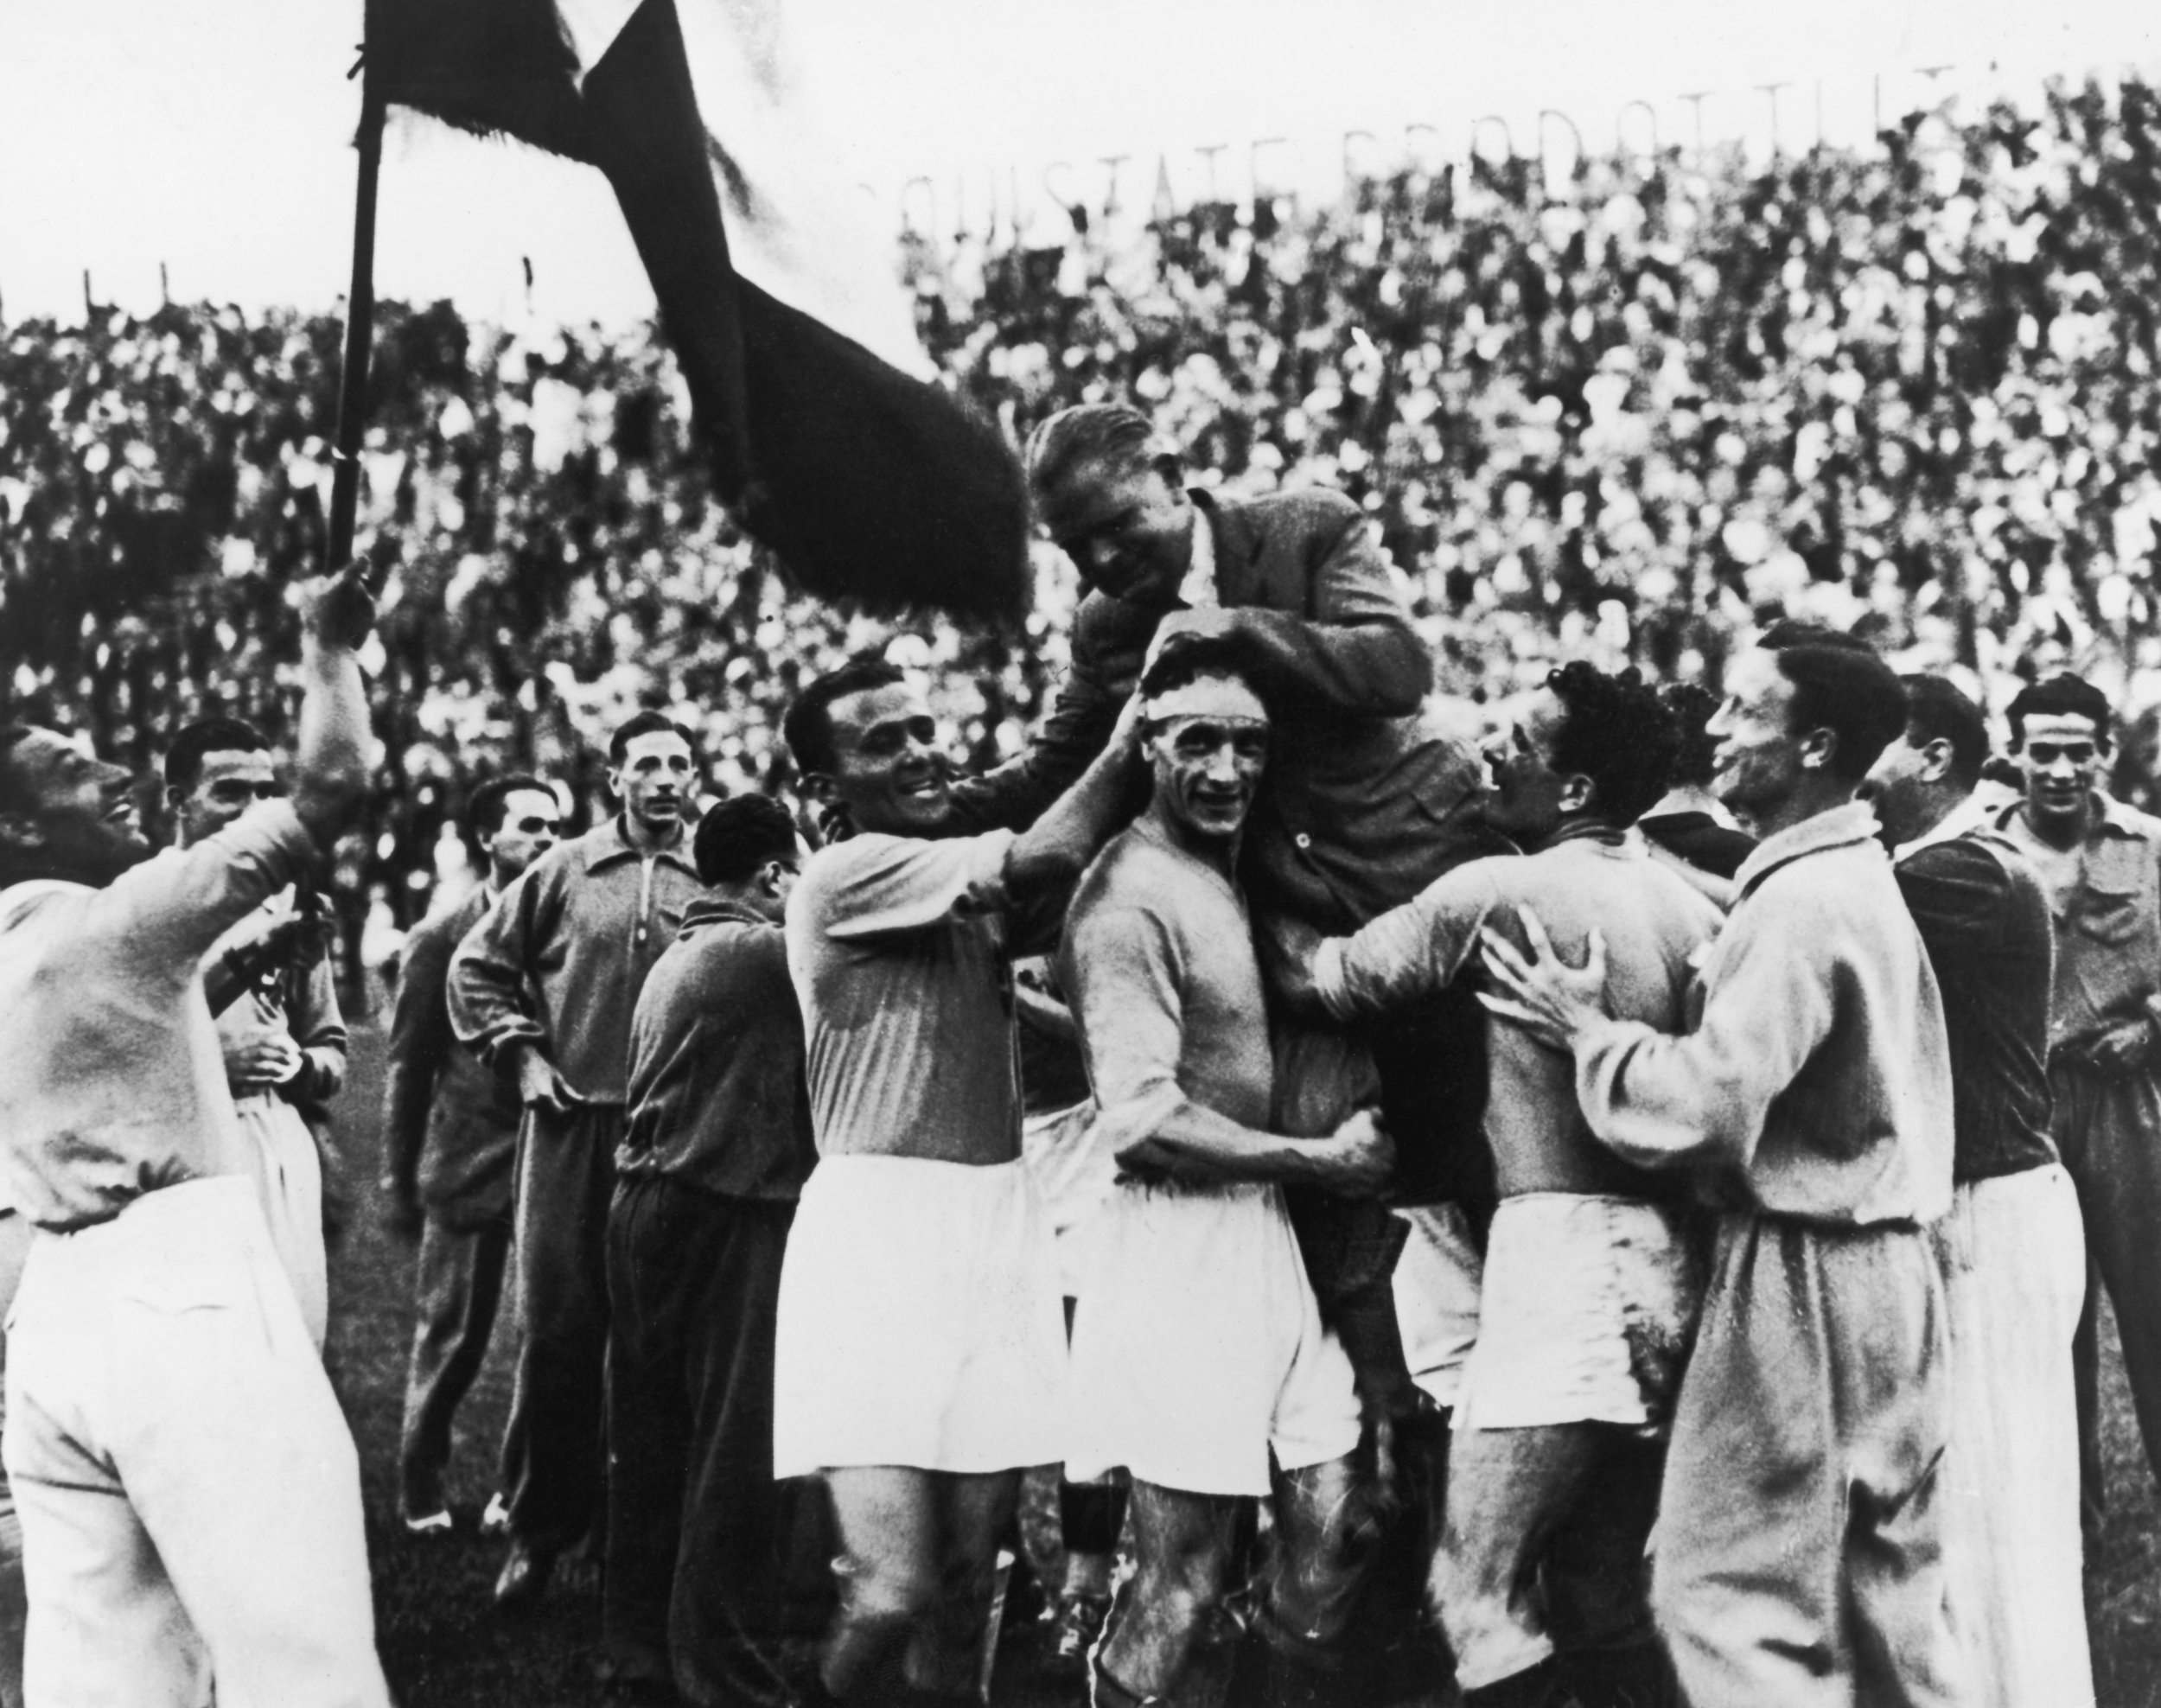 The 1934 Italian team carries their manager,Vittorio Pozzo, after beating Czechoslovakia in the World Cup final in Rome. Photo by Keystone/Getty Images